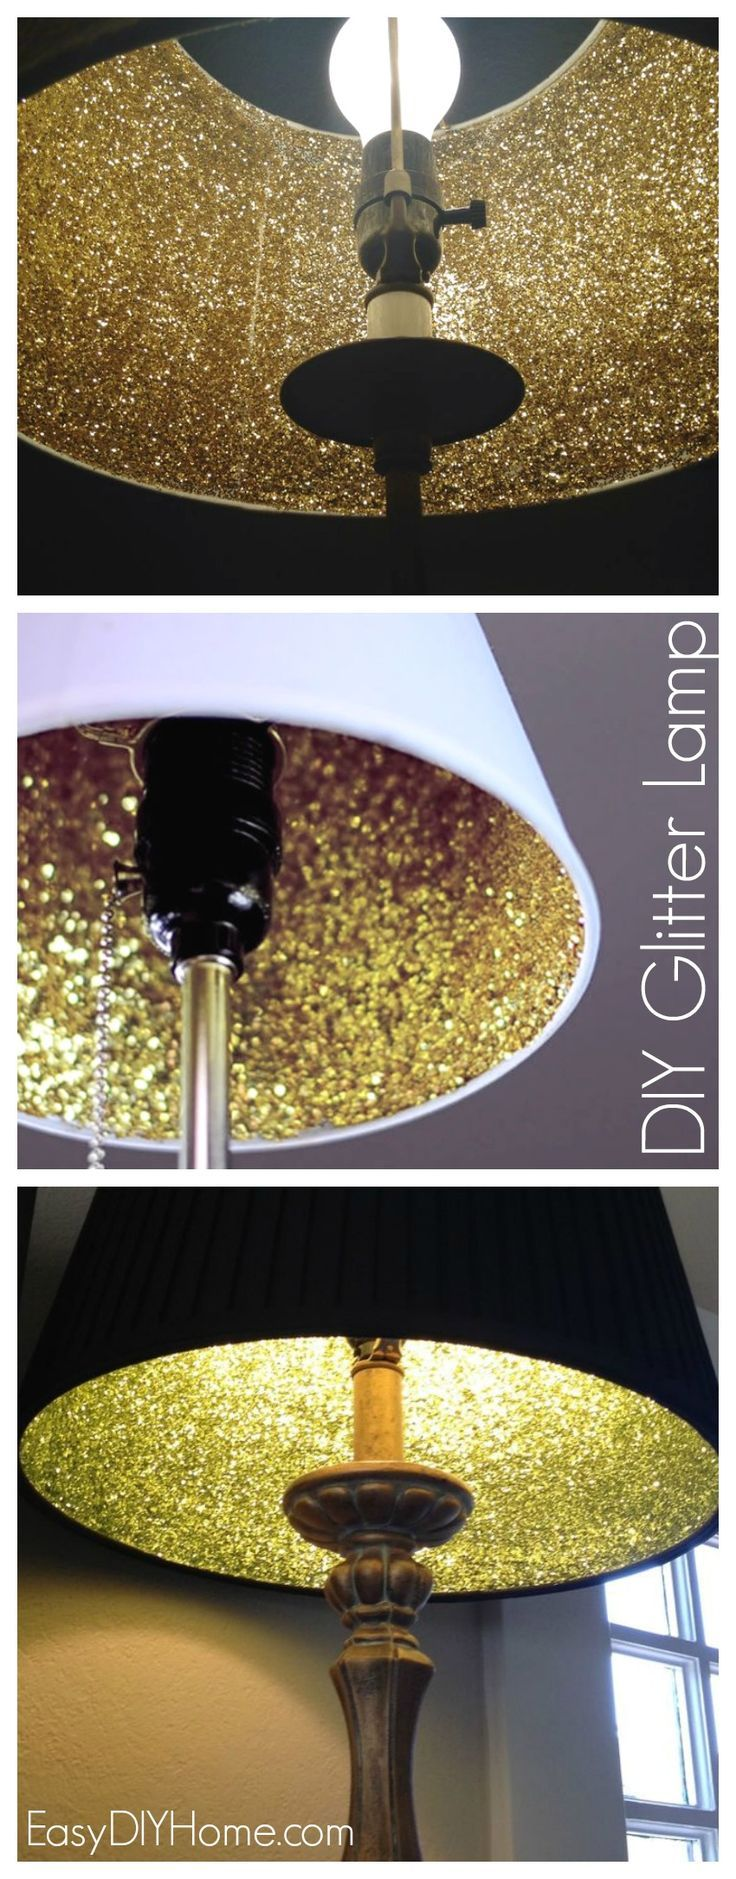 #EasyDIYHome : Glitter Lamp Project - dress up a plain lamp shade! | EasyDIYHome.com #GlitterDecoracion